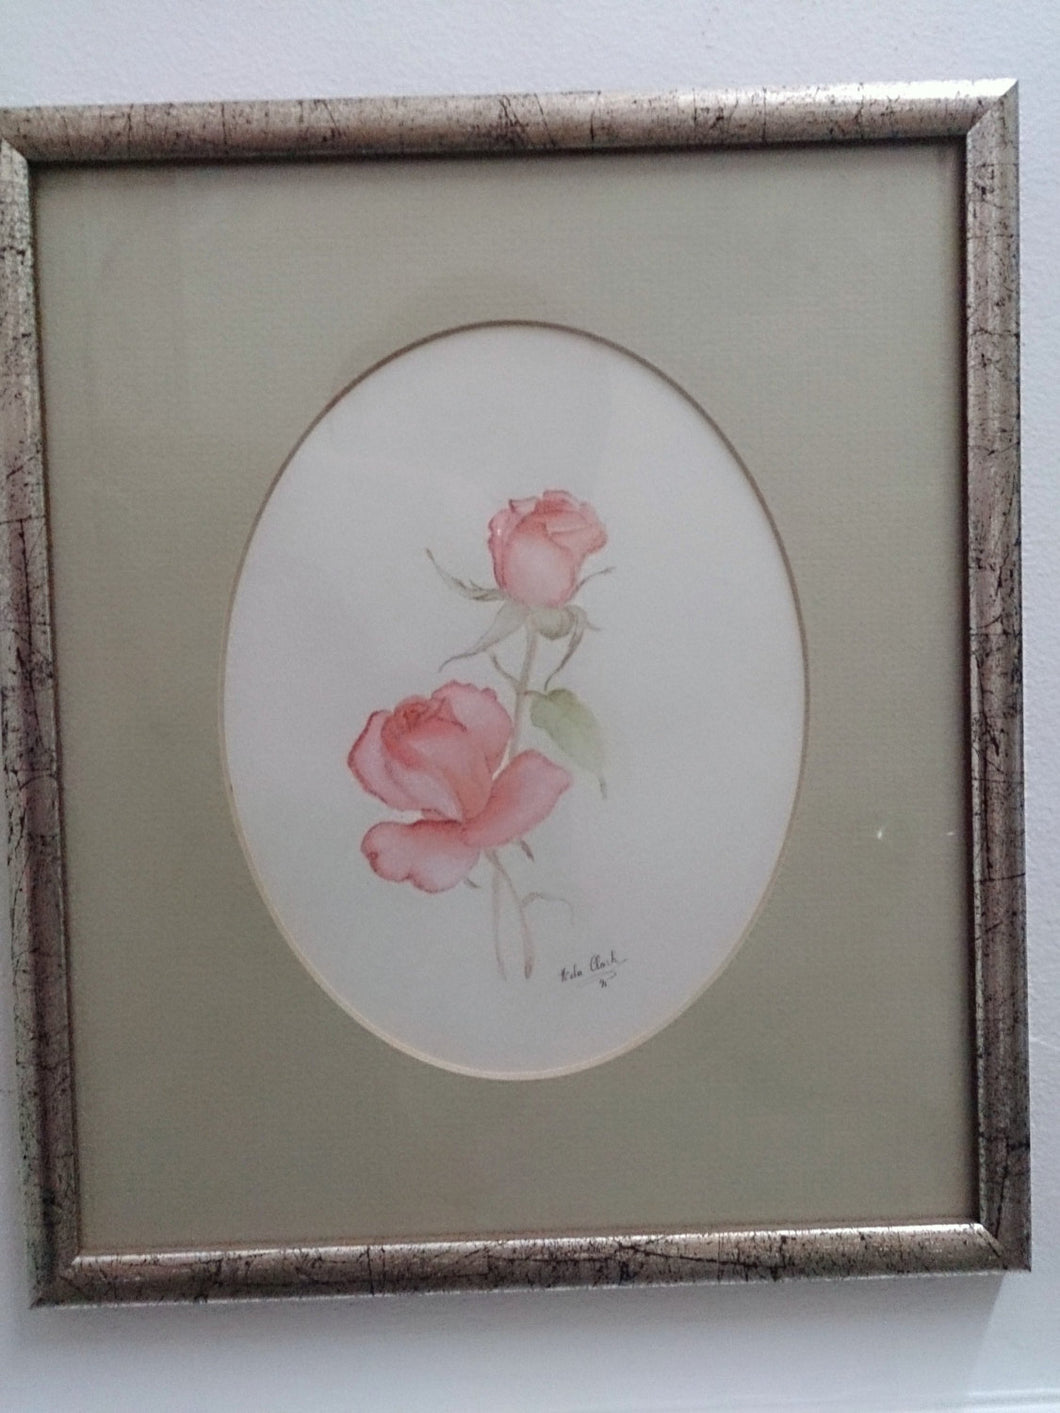 A Set Of 2 Framed Original Nola Clark (signed) Pastels. Watercolour and Pencil Paintings Still Life Roses